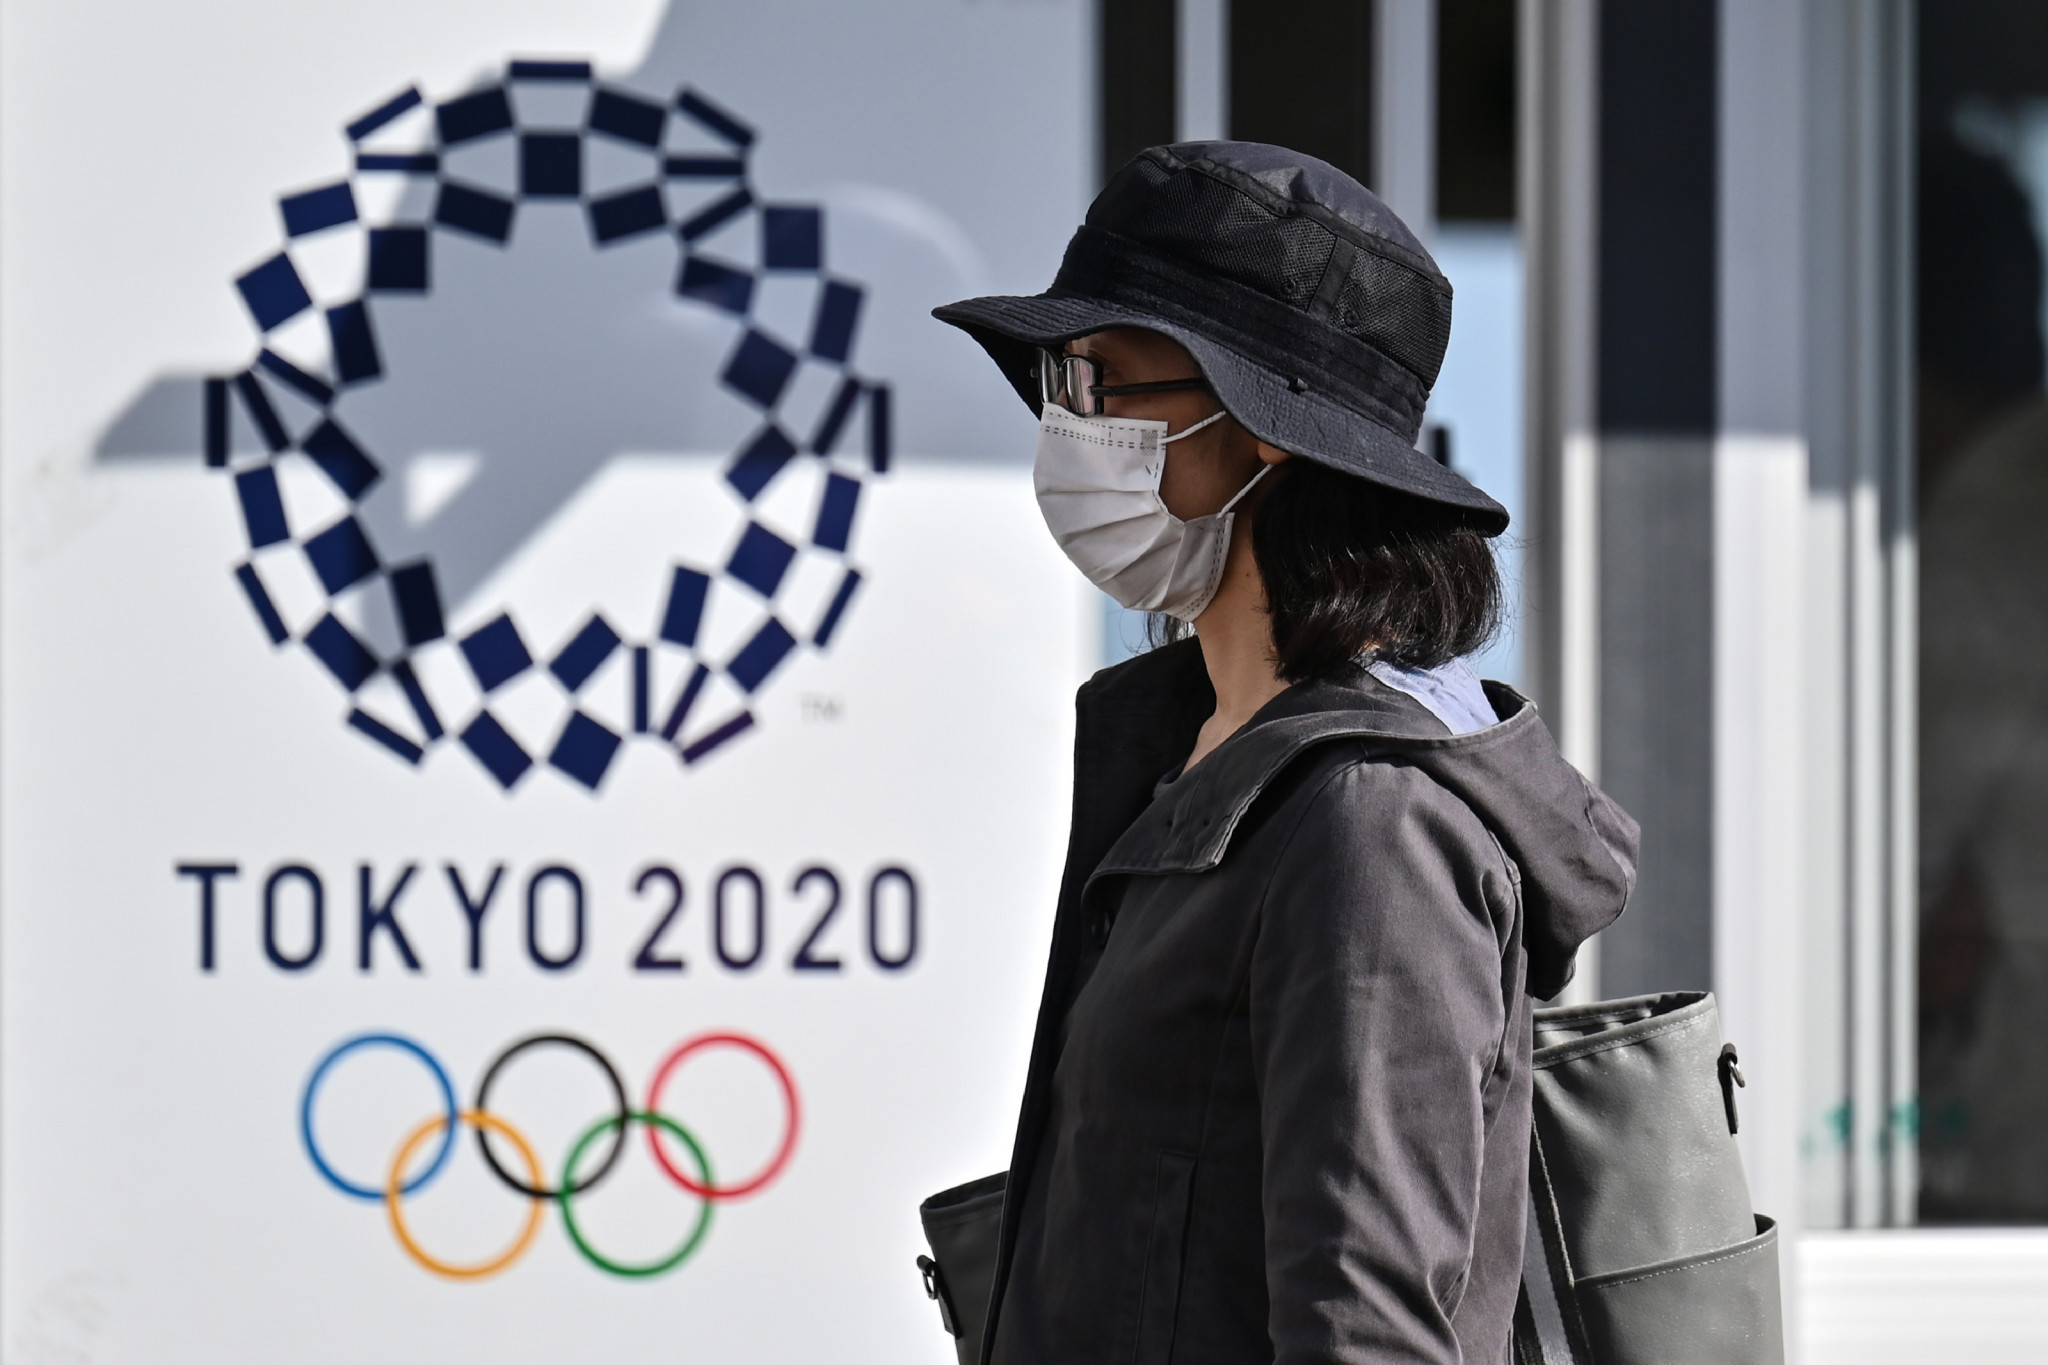 """Tokyo 2020 organisers are urging spectators to """"pack less to wait less"""" at venues next year ©Getty Images"""